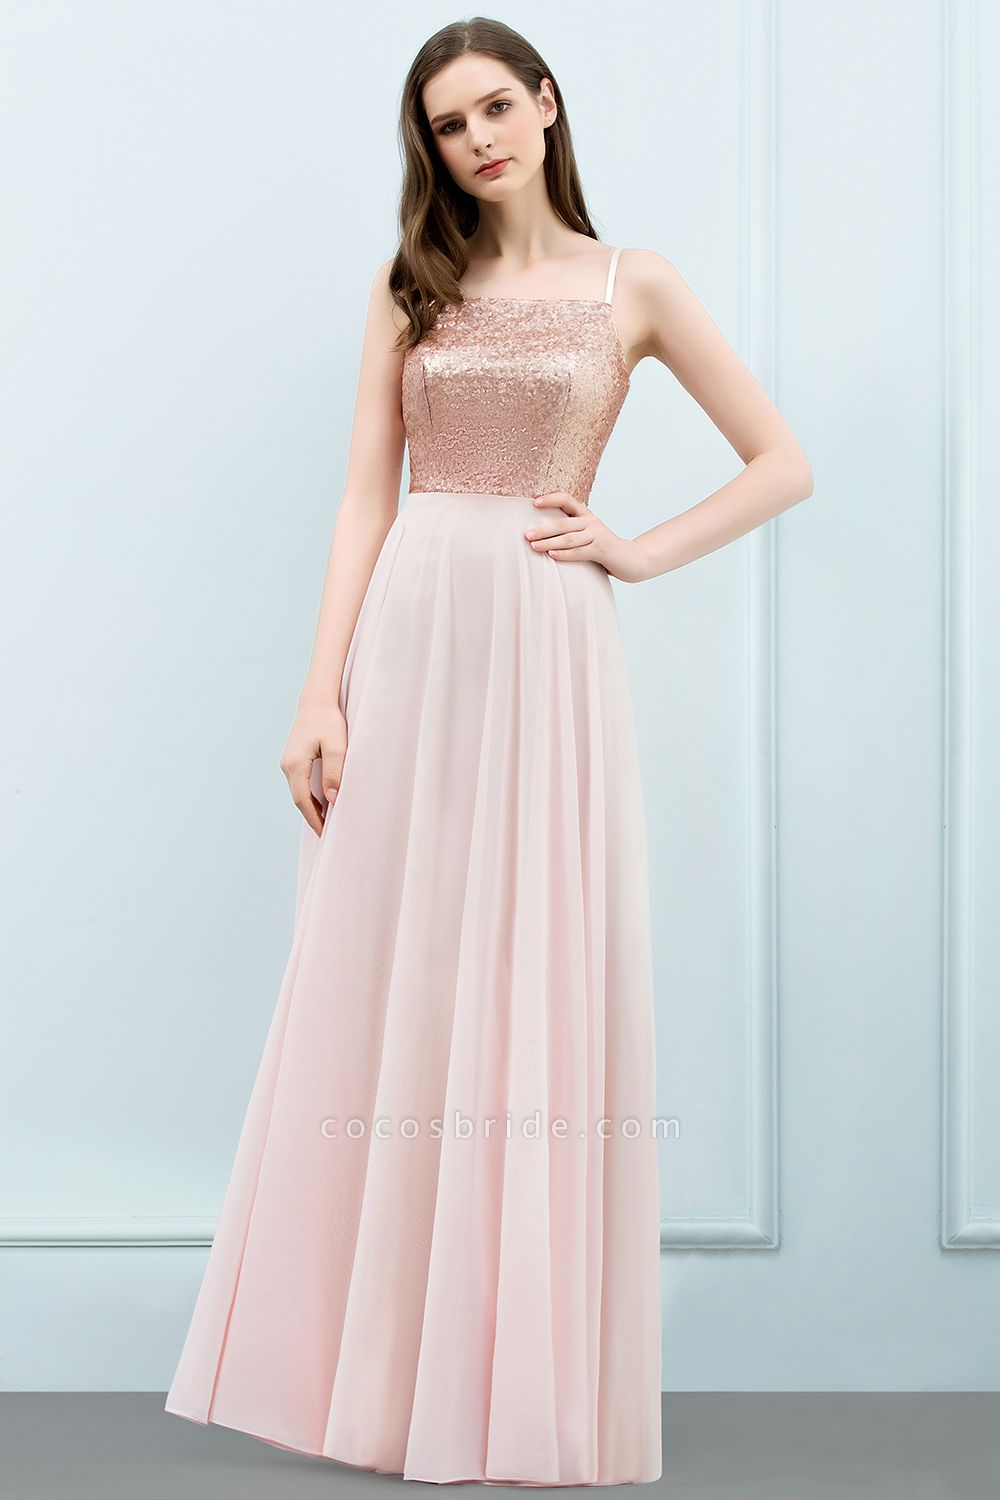 A-line Chiffon Sequined Spaghetti Straps Sleeveless Floor-Length Bridesmaid Dress